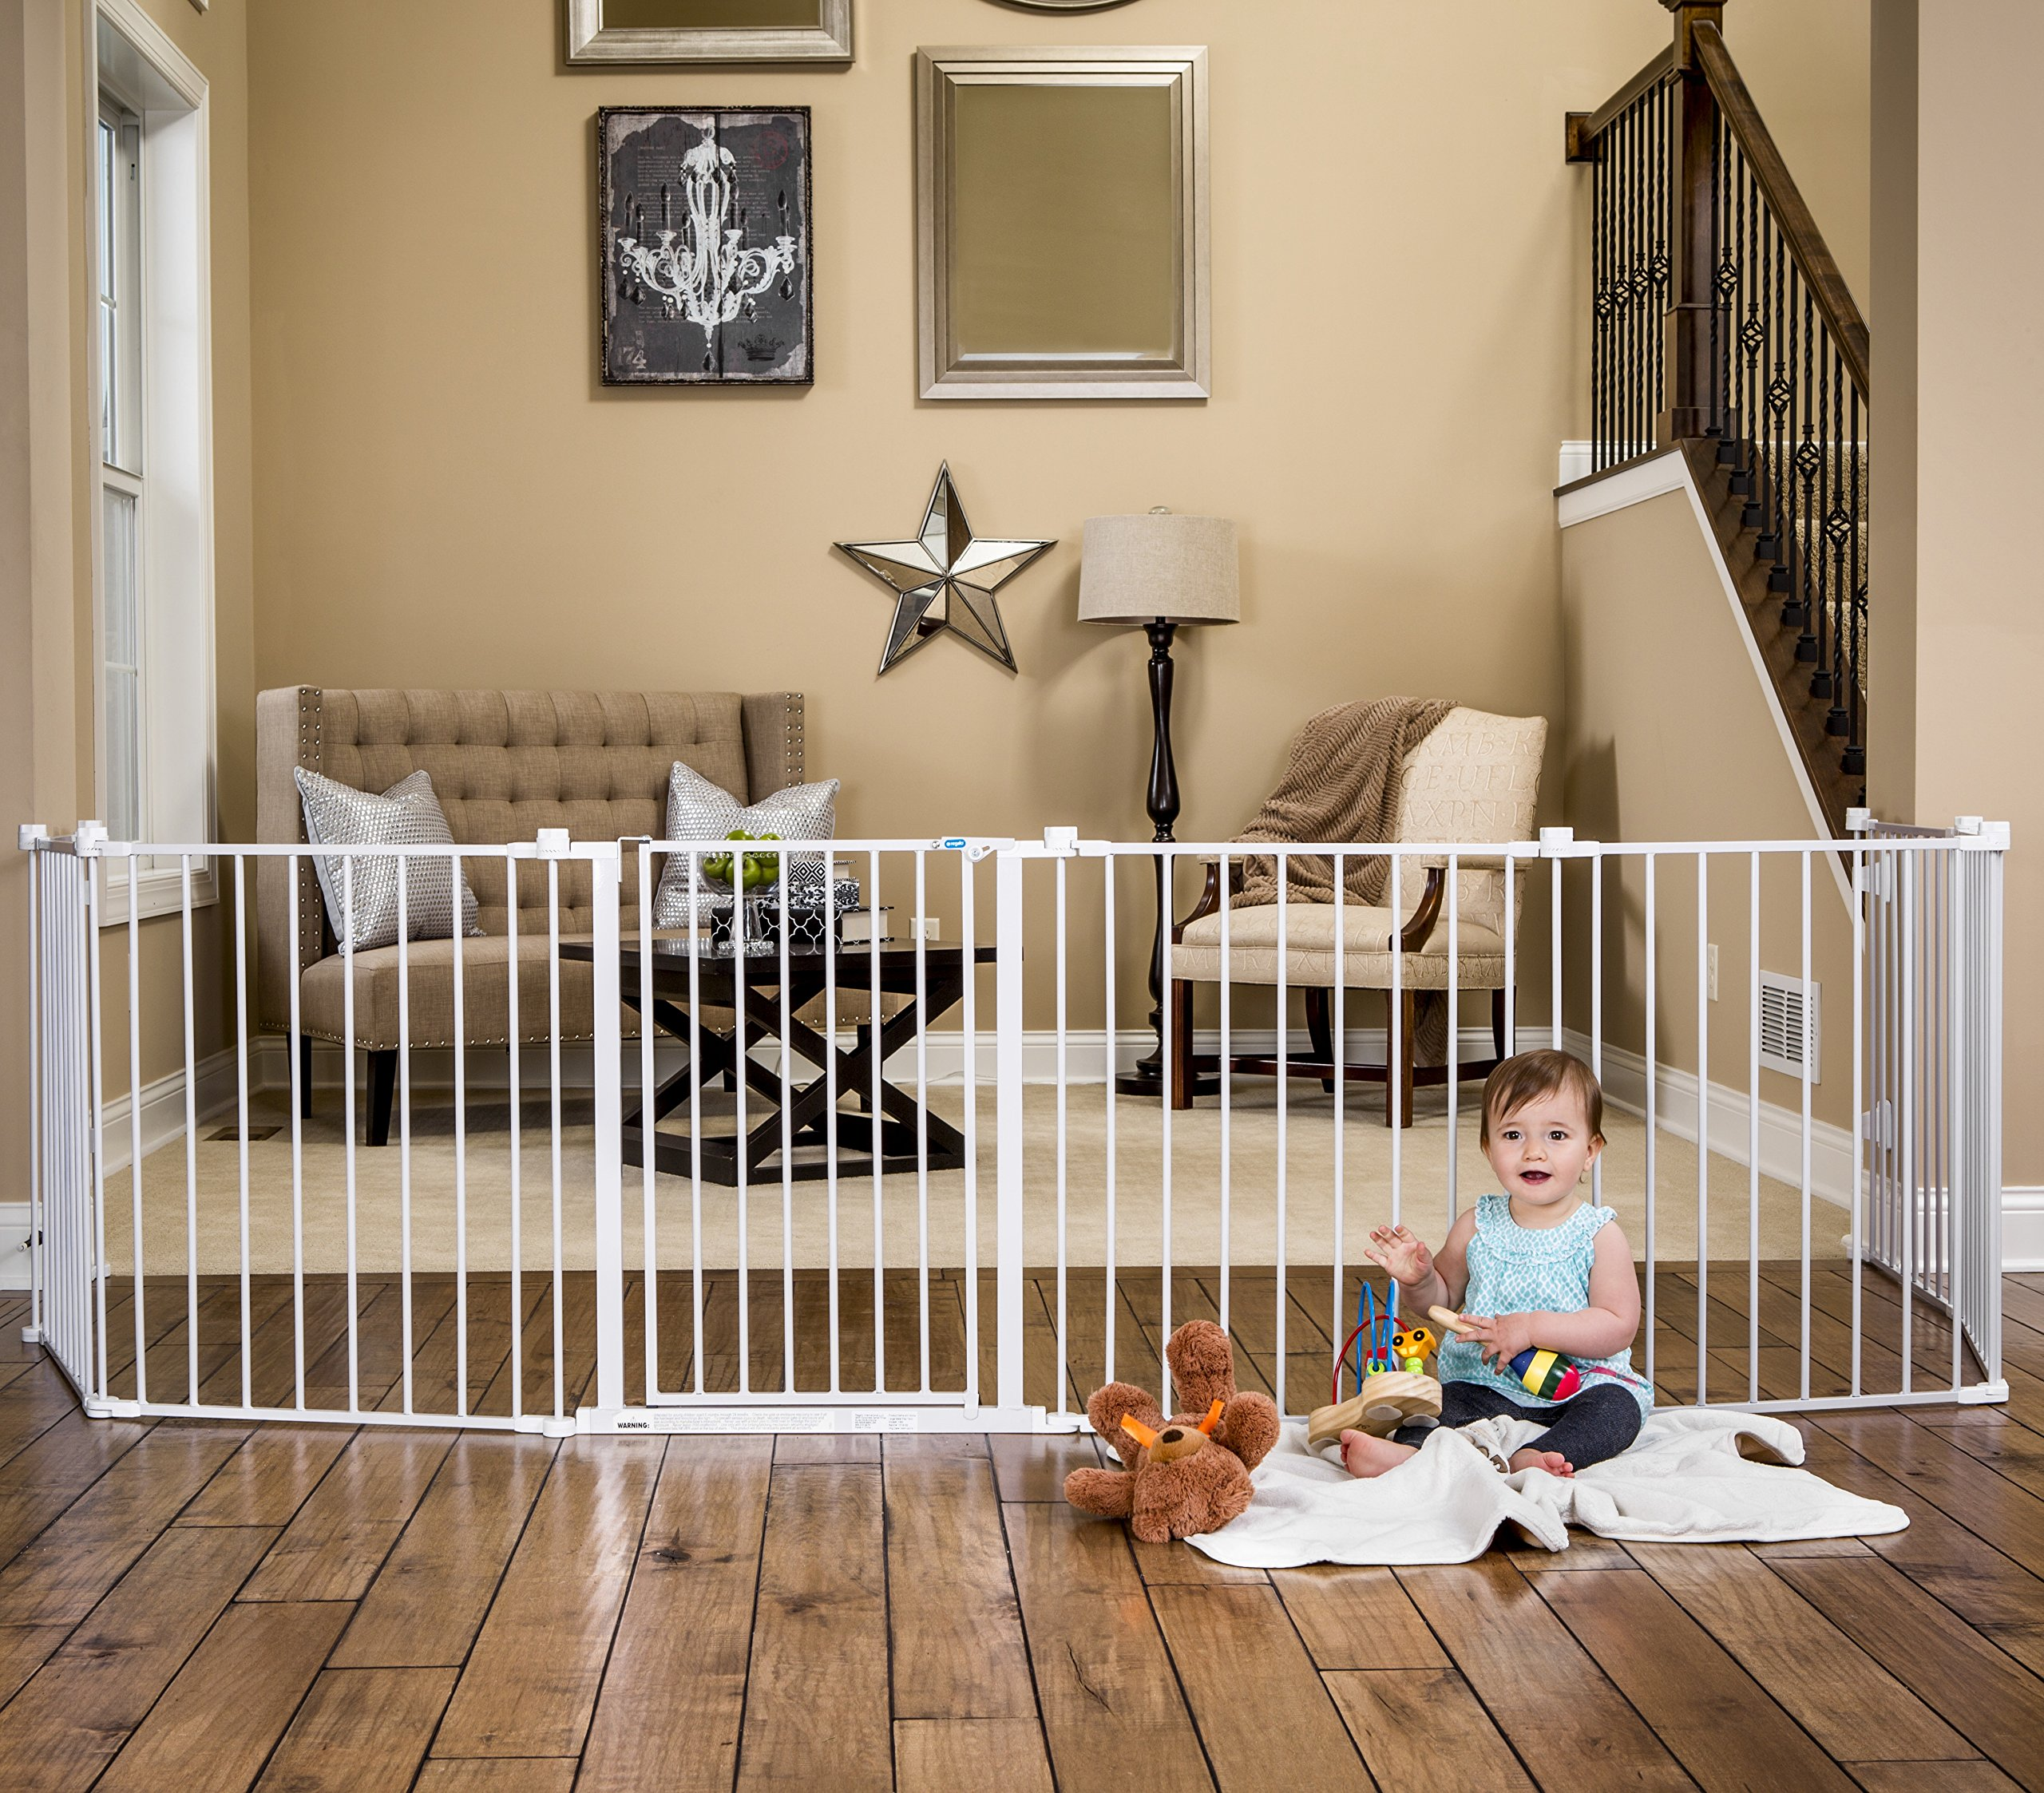 Wide Safety Metal Gate Baby For Pet Dog Extra Playpen Indoor Outdoor Child  Fence | EBay